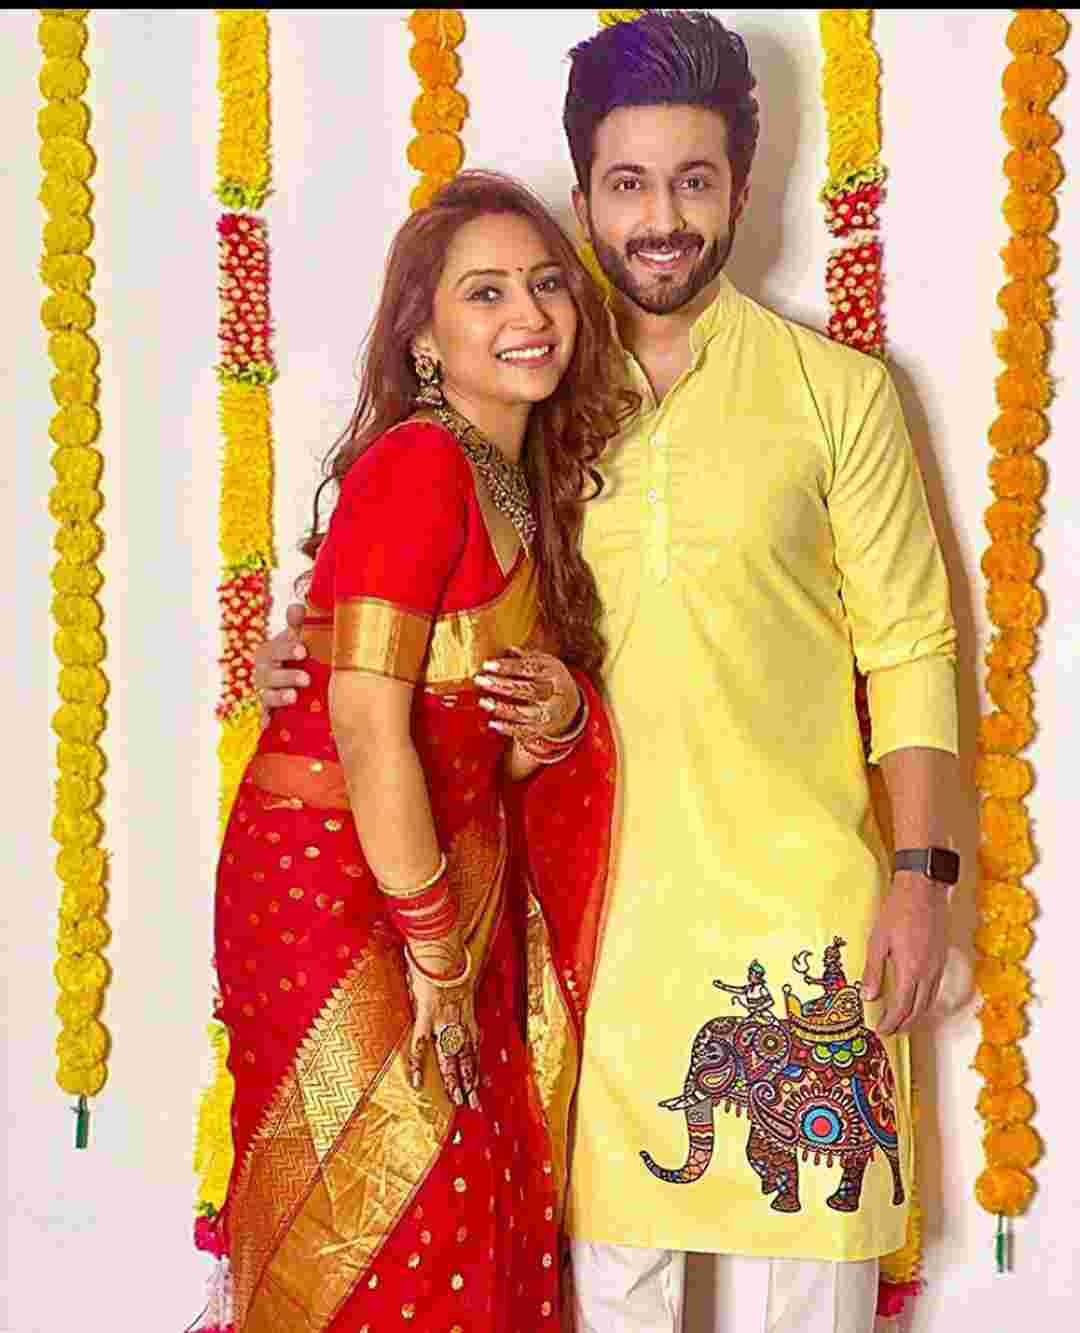 Celebrate Diwali with your partner